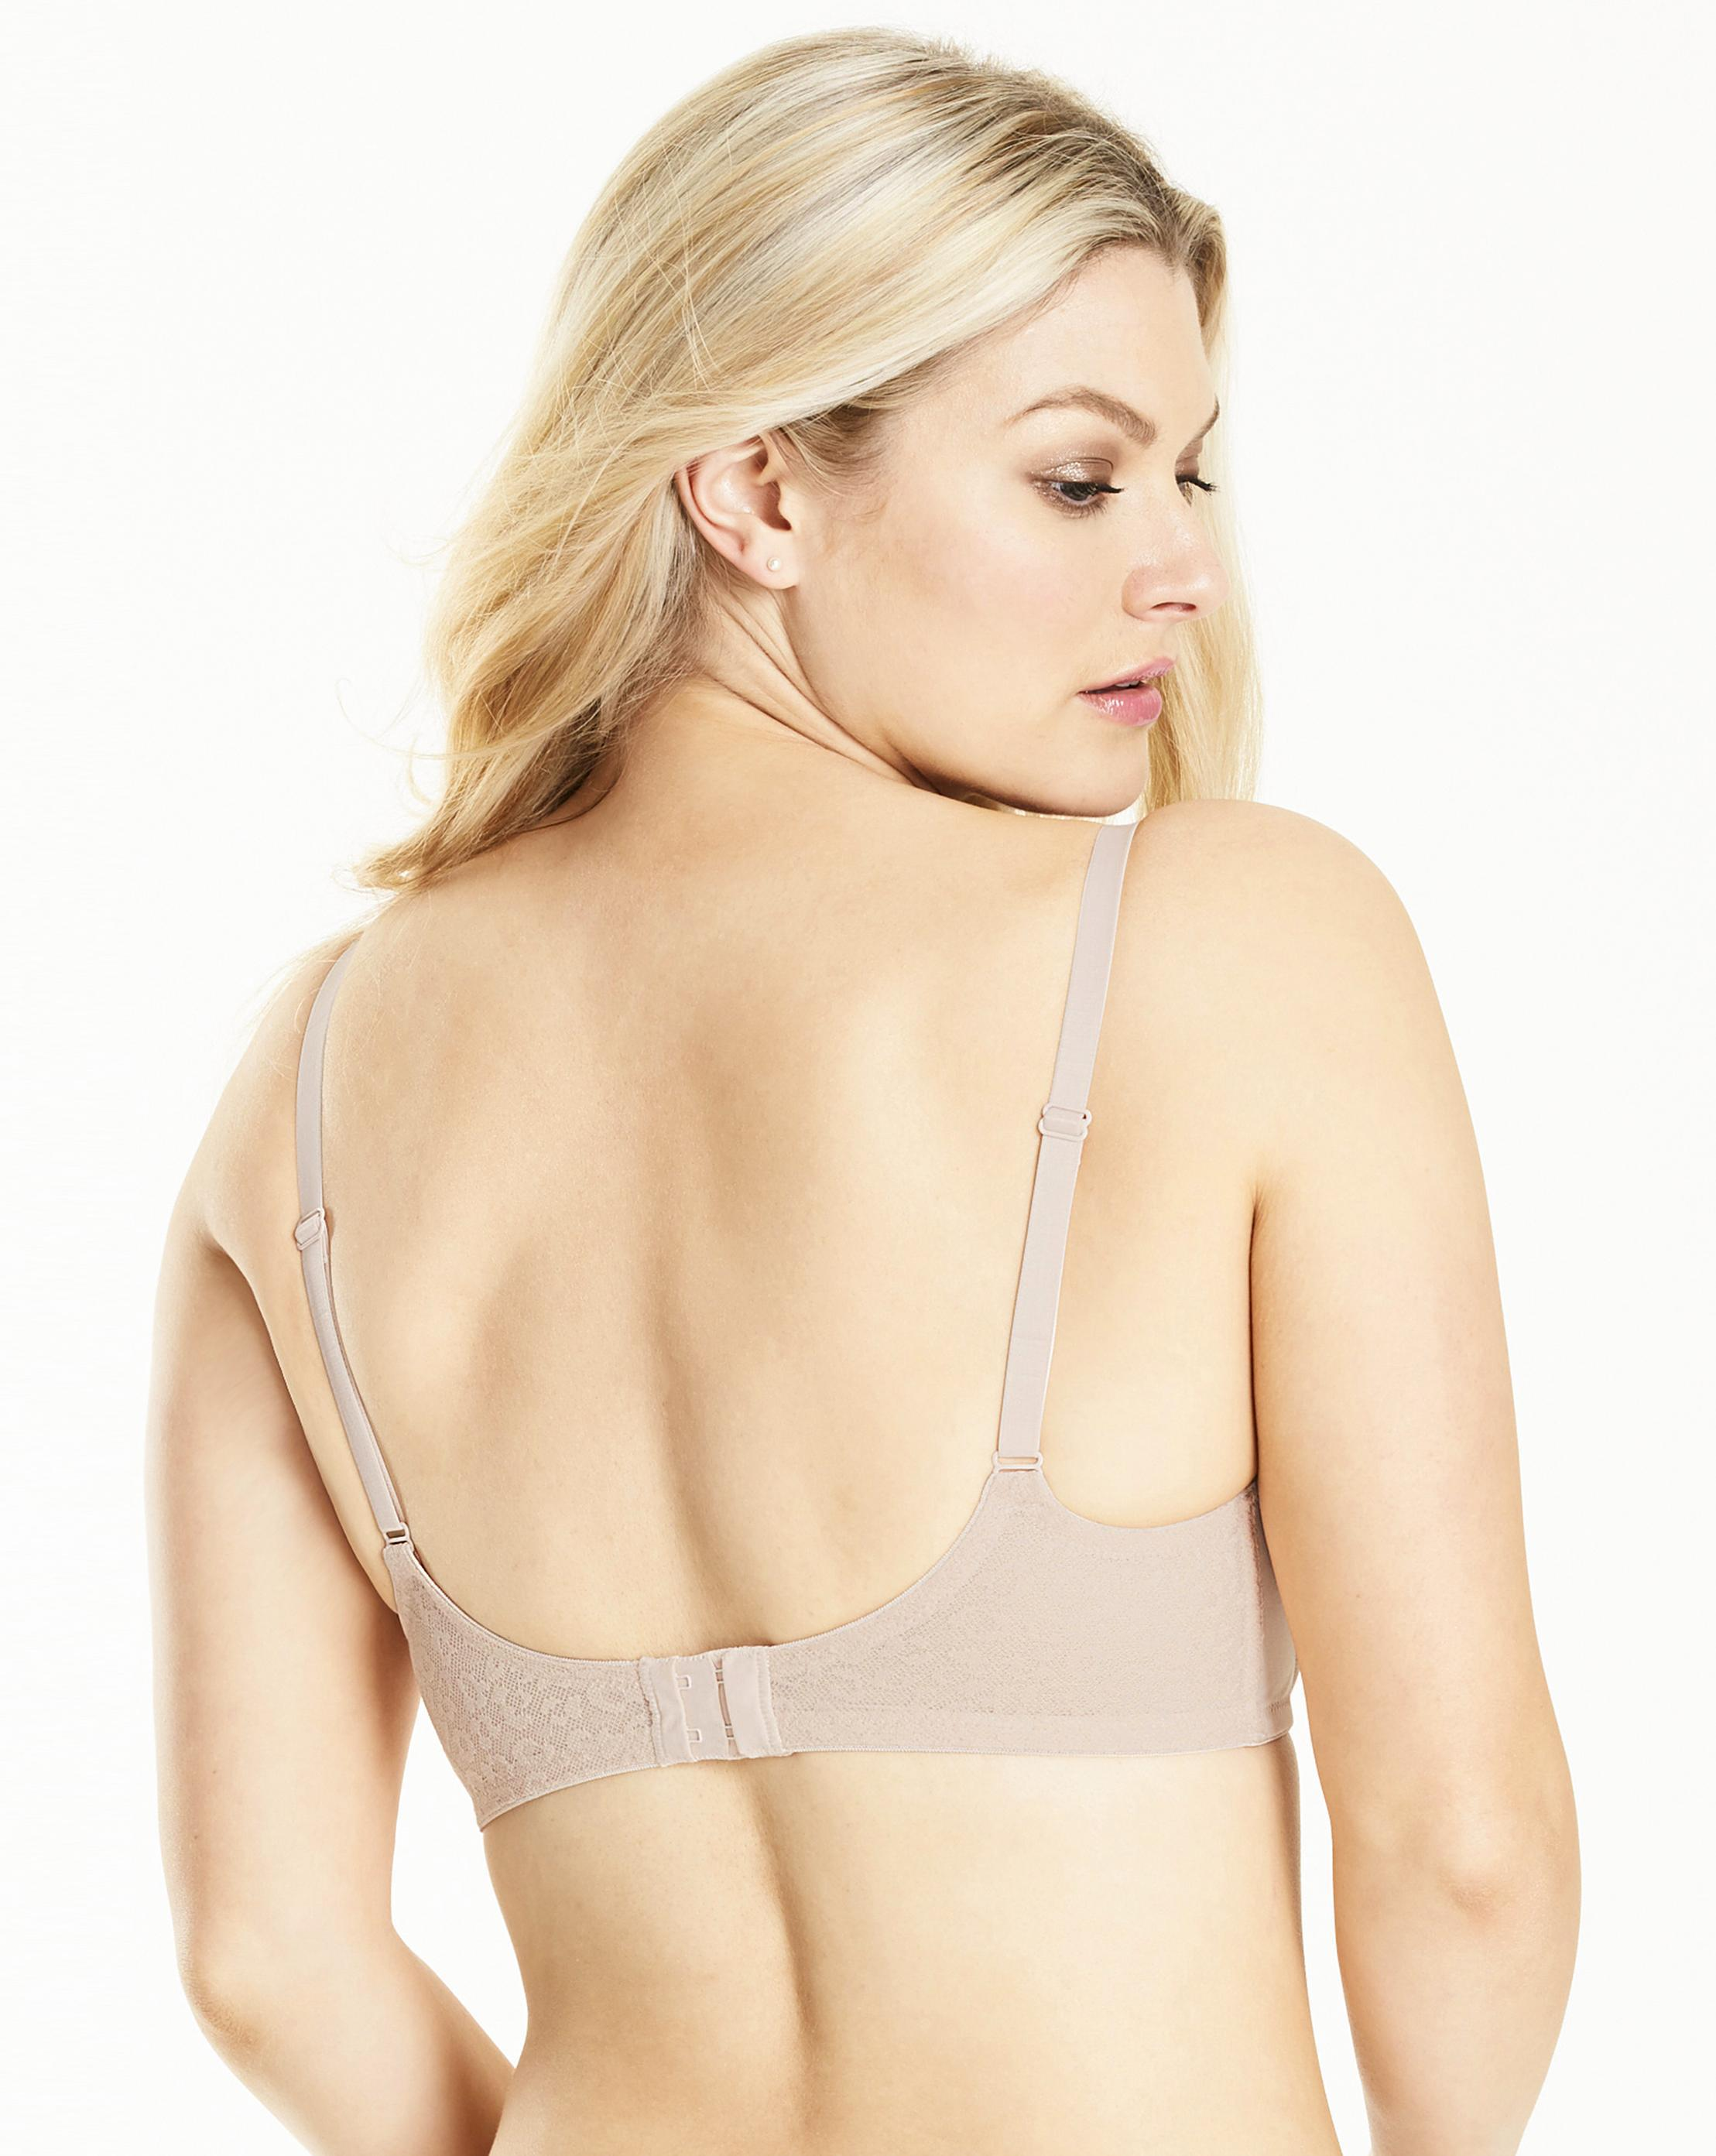 ea2cede11f Lyst - Simply Be Sienna Balcony T Shirt Bra in Natural